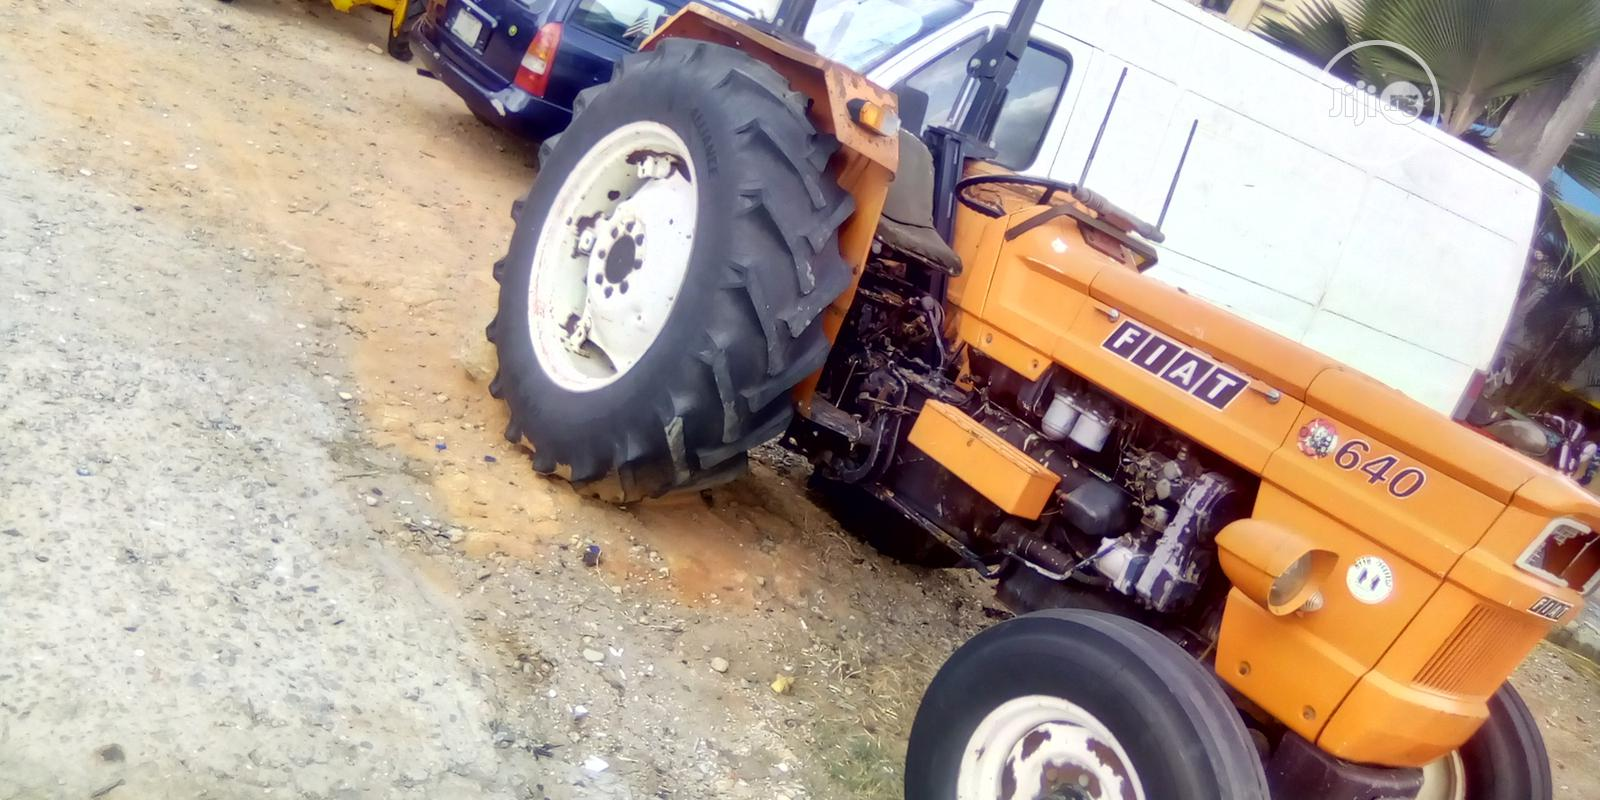 Foreign Used Tractors For Sale | Heavy Equipment for sale in Isolo, Lagos State, Nigeria